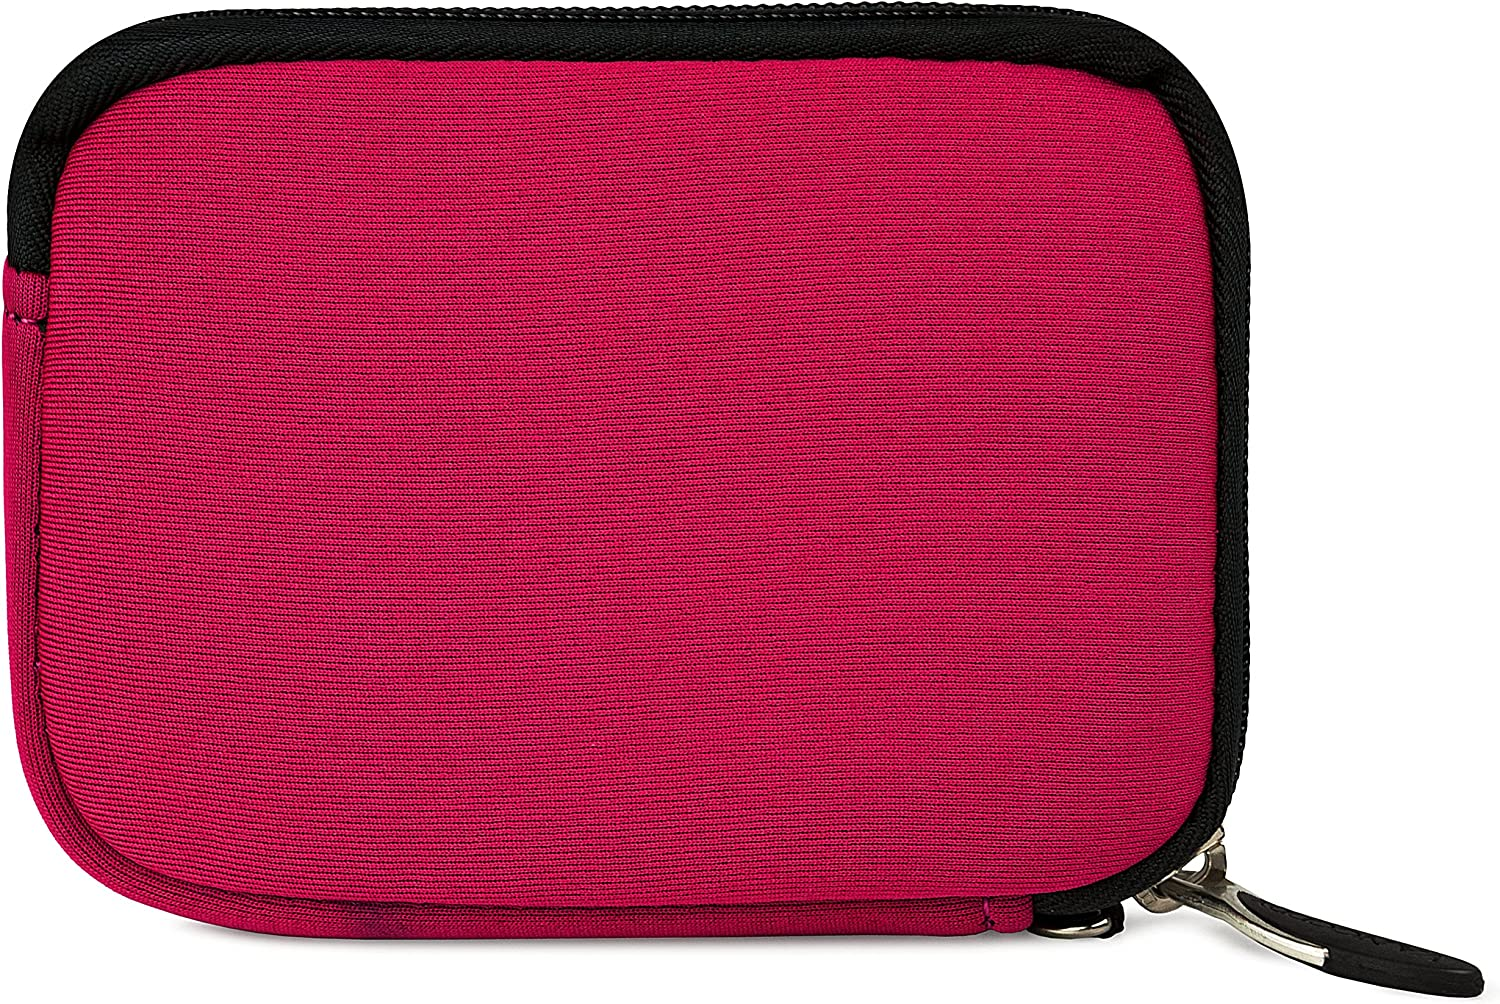 Magenta and Black VanGoddy Mini Glove Sleeve Pouch Case for Olympus Digital Cameras